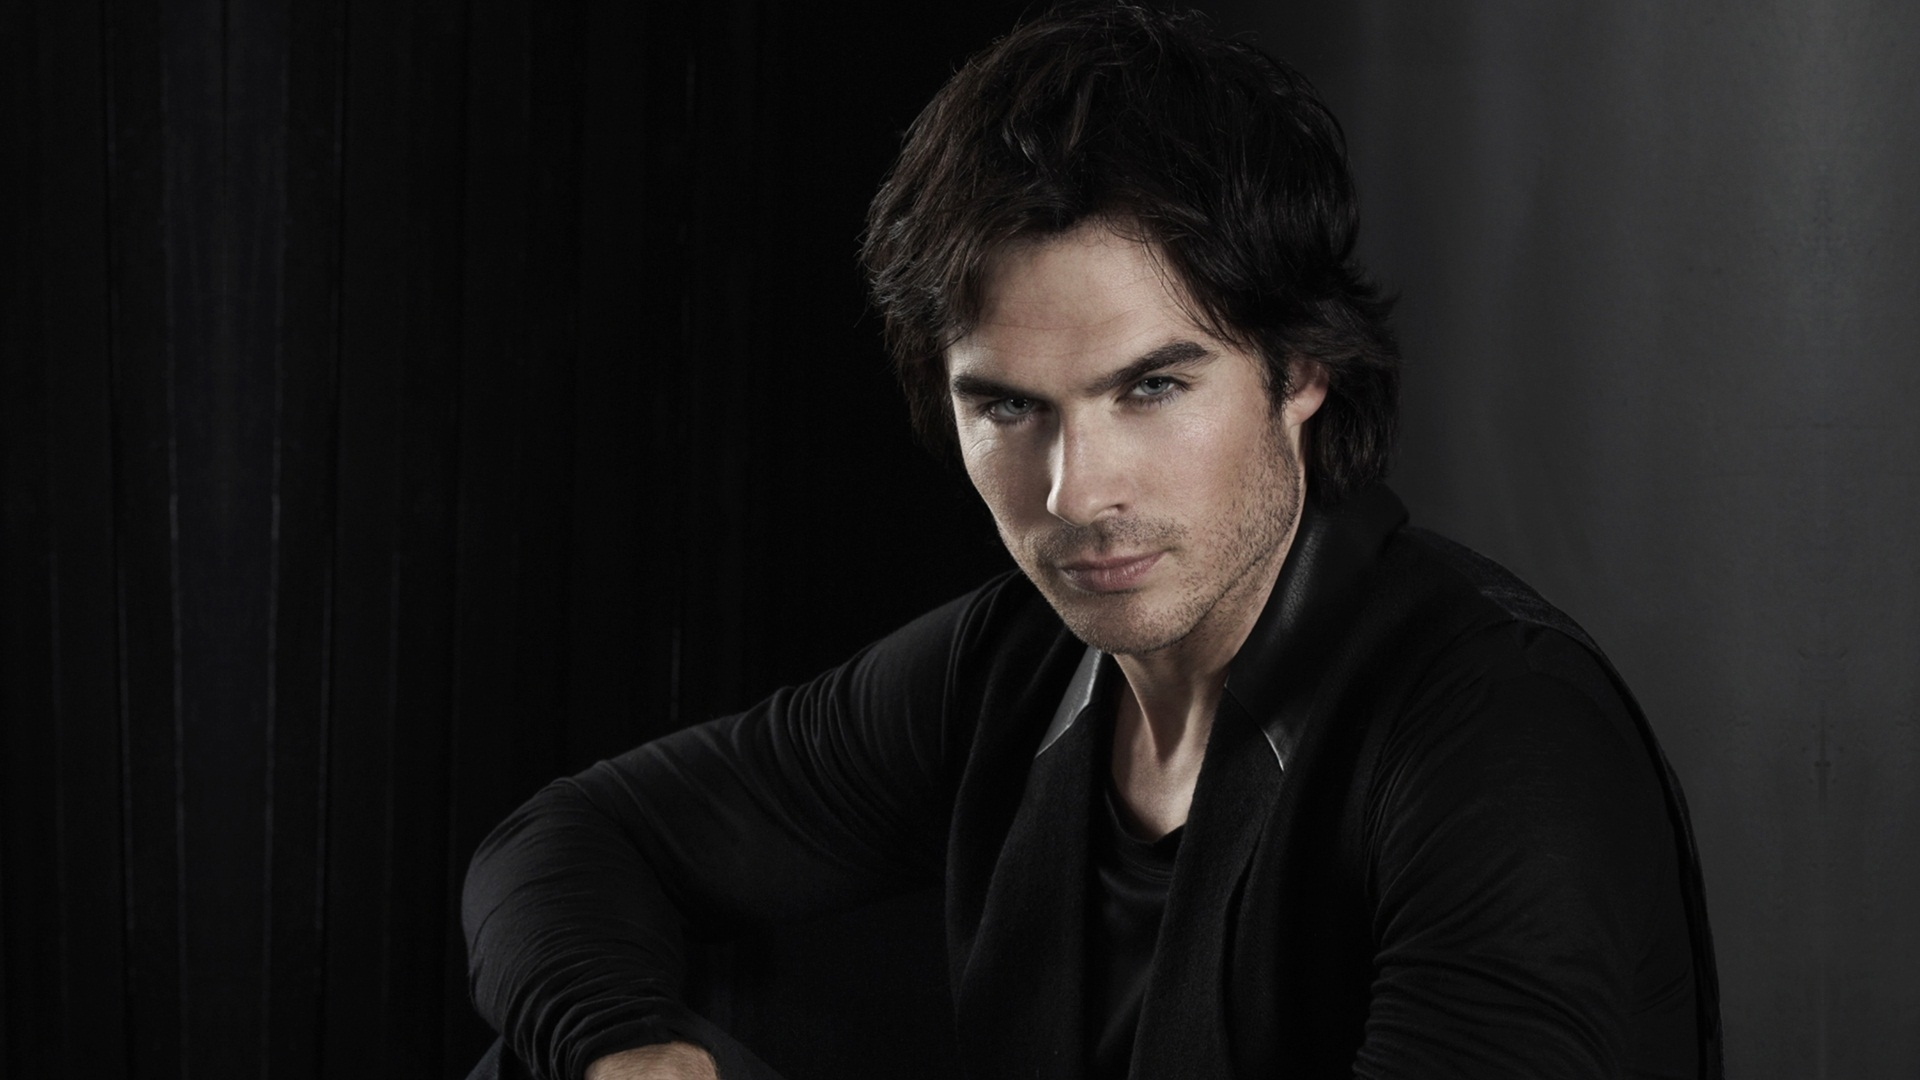 Ian Somerhalder For Desktop